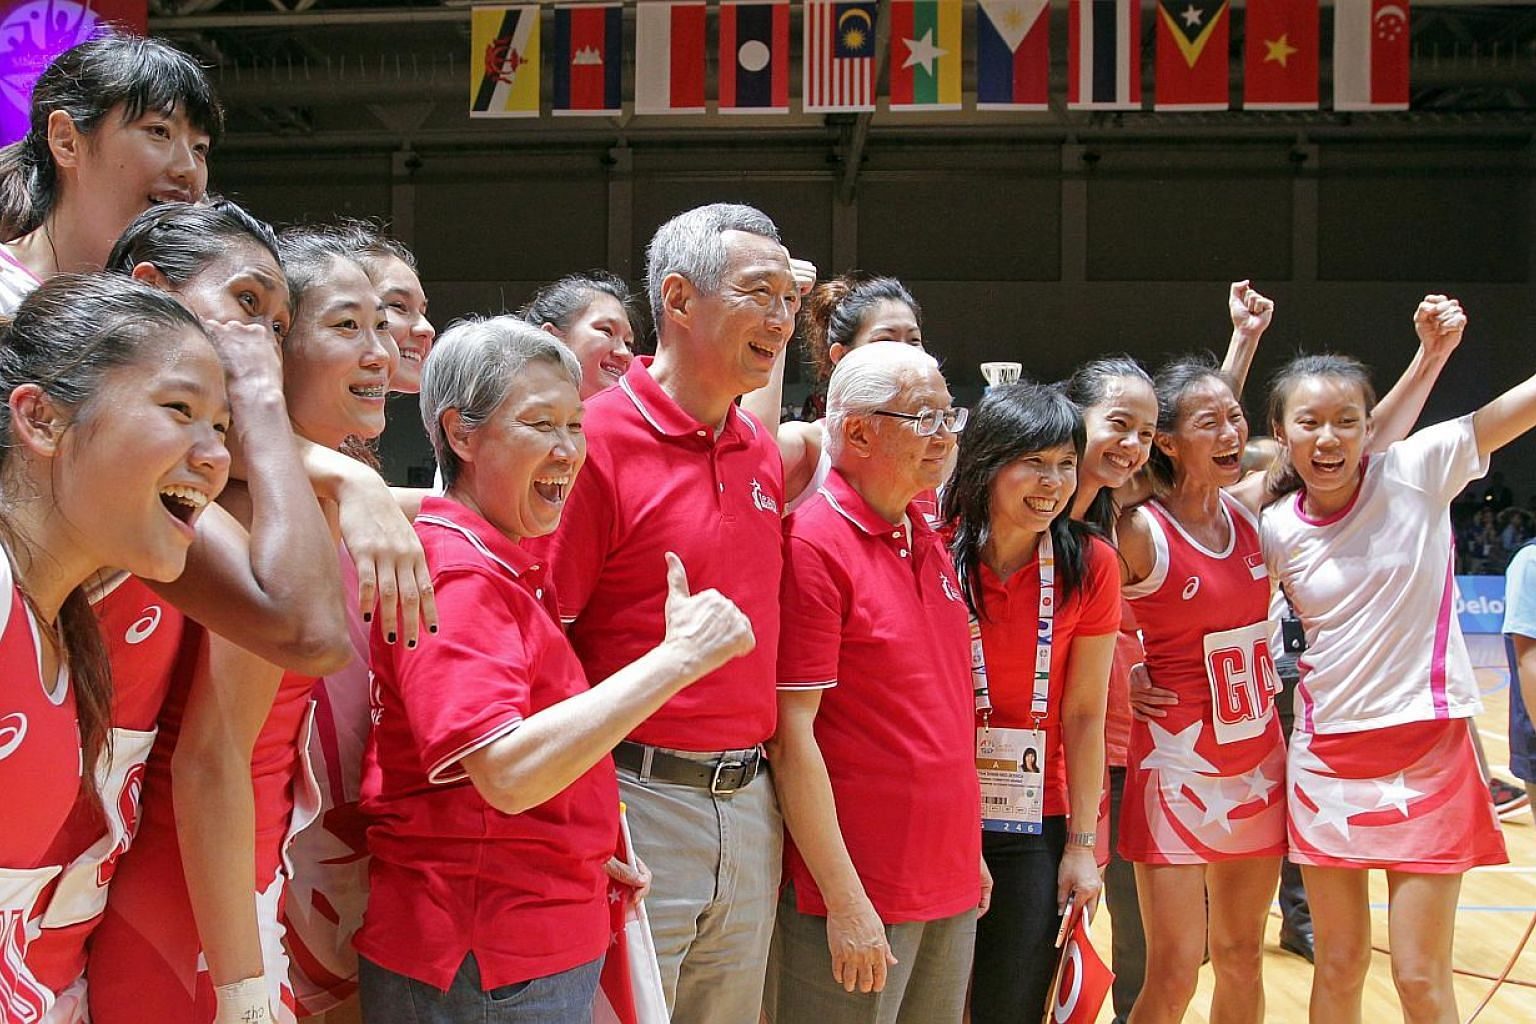 (From left) Ho Ching, Prime Minister Lee Hsien Loong and President Tony Tan Keng Yam posing for a photo with Singapore's netballers after their historic gold medal. -- ST PHOTO:SEAH KWANG PENG